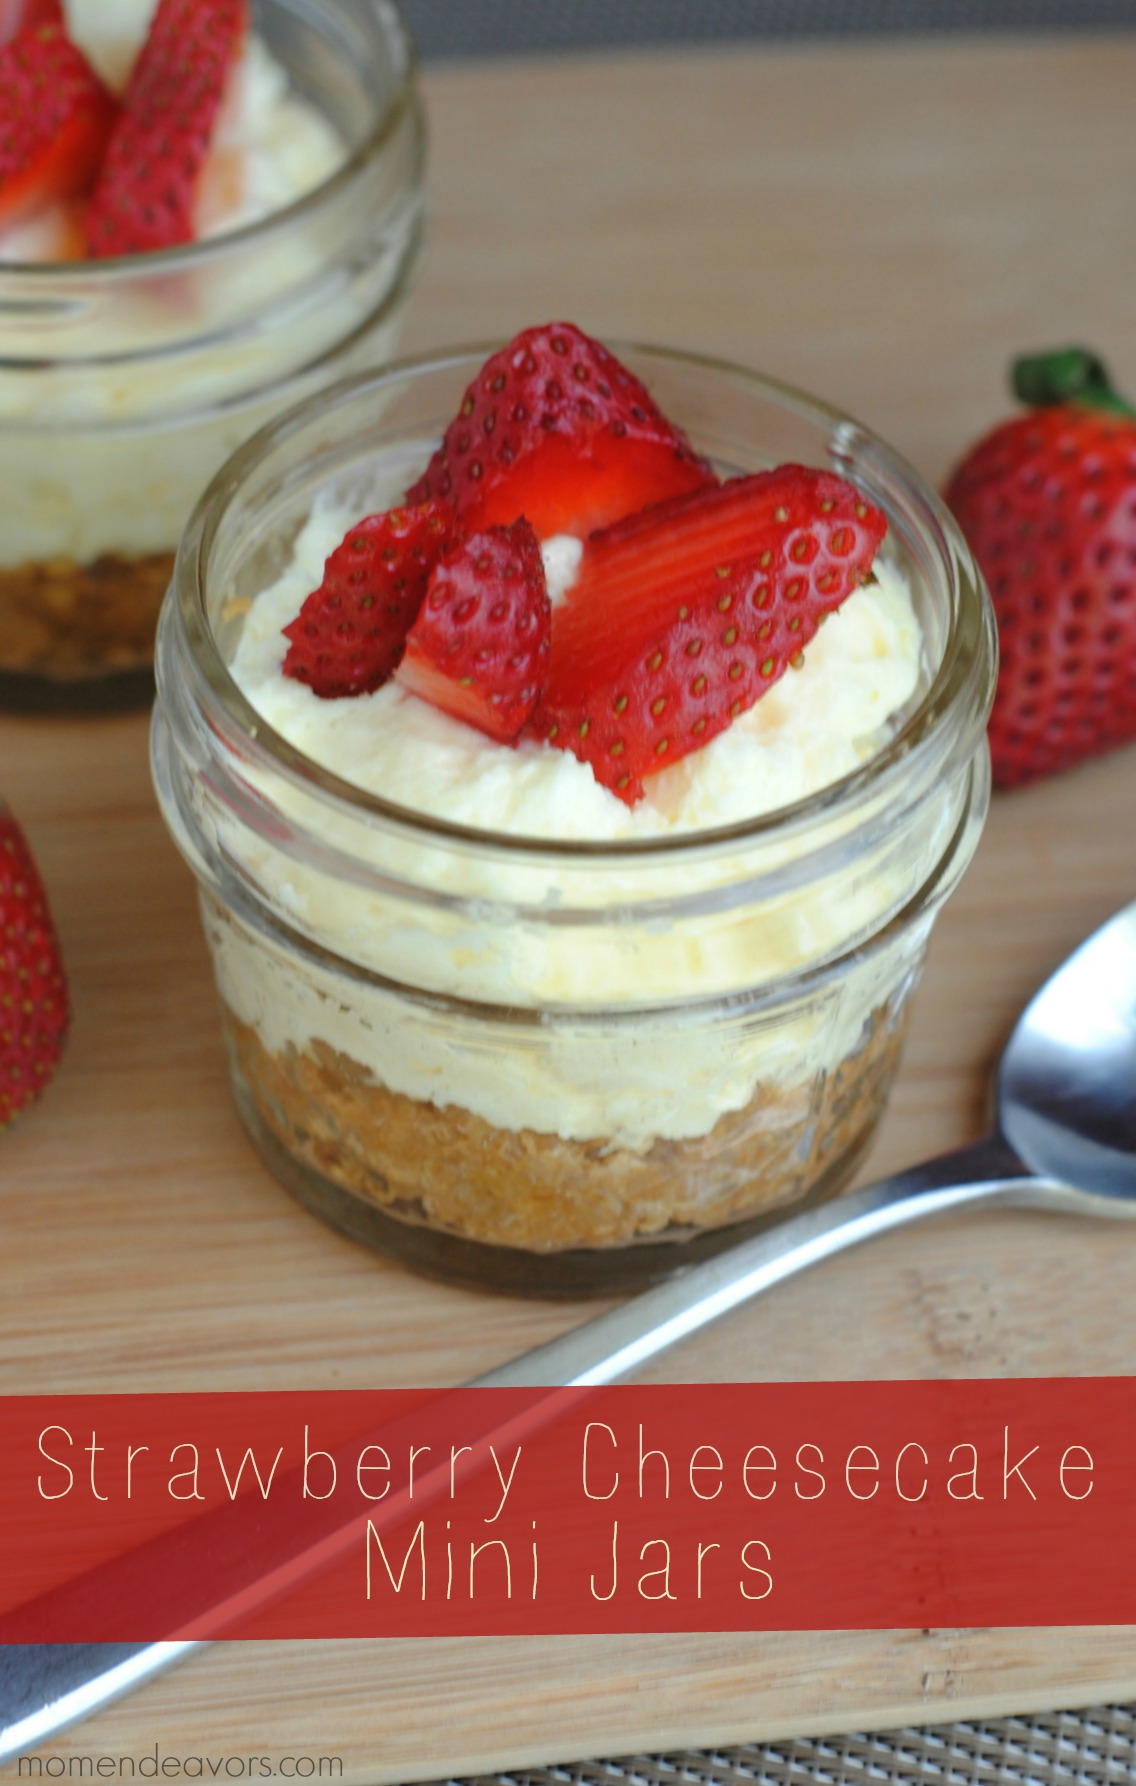 Strawberry Cheesecake Mini Jars